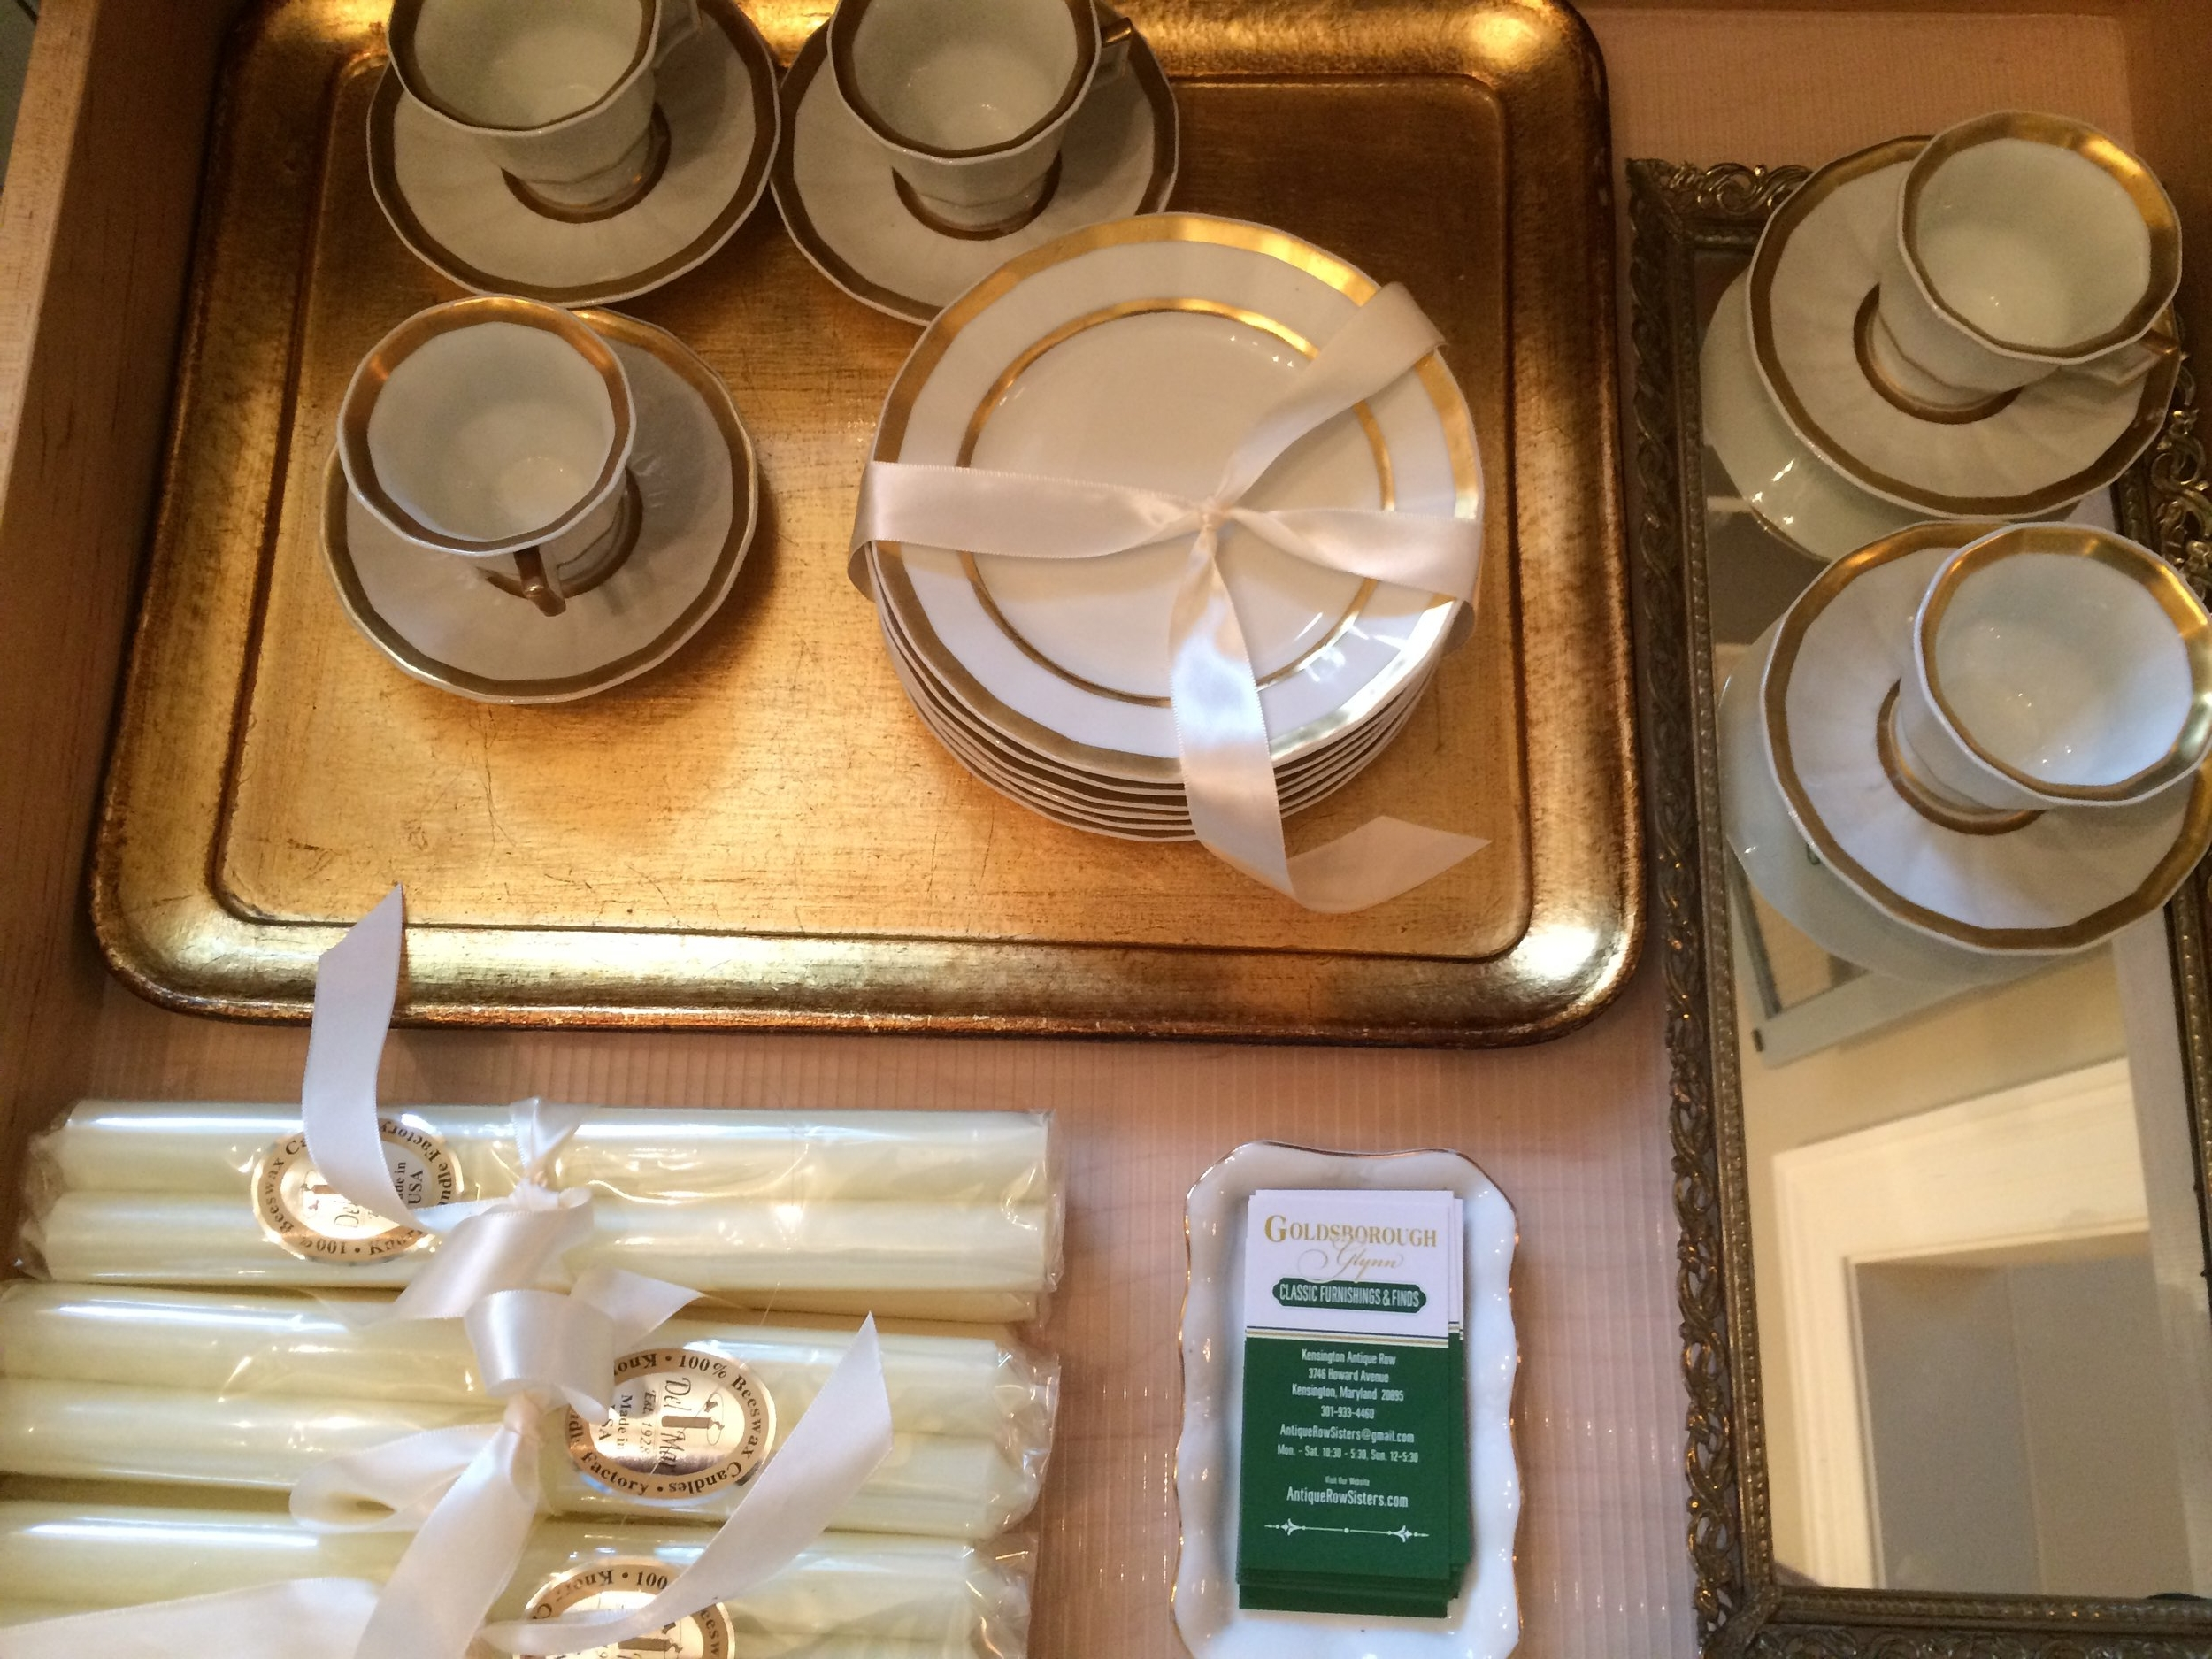 An ivory and gold drawer of limoge cups and saucers and Royal Cierge 100% bees wax candles sticks.